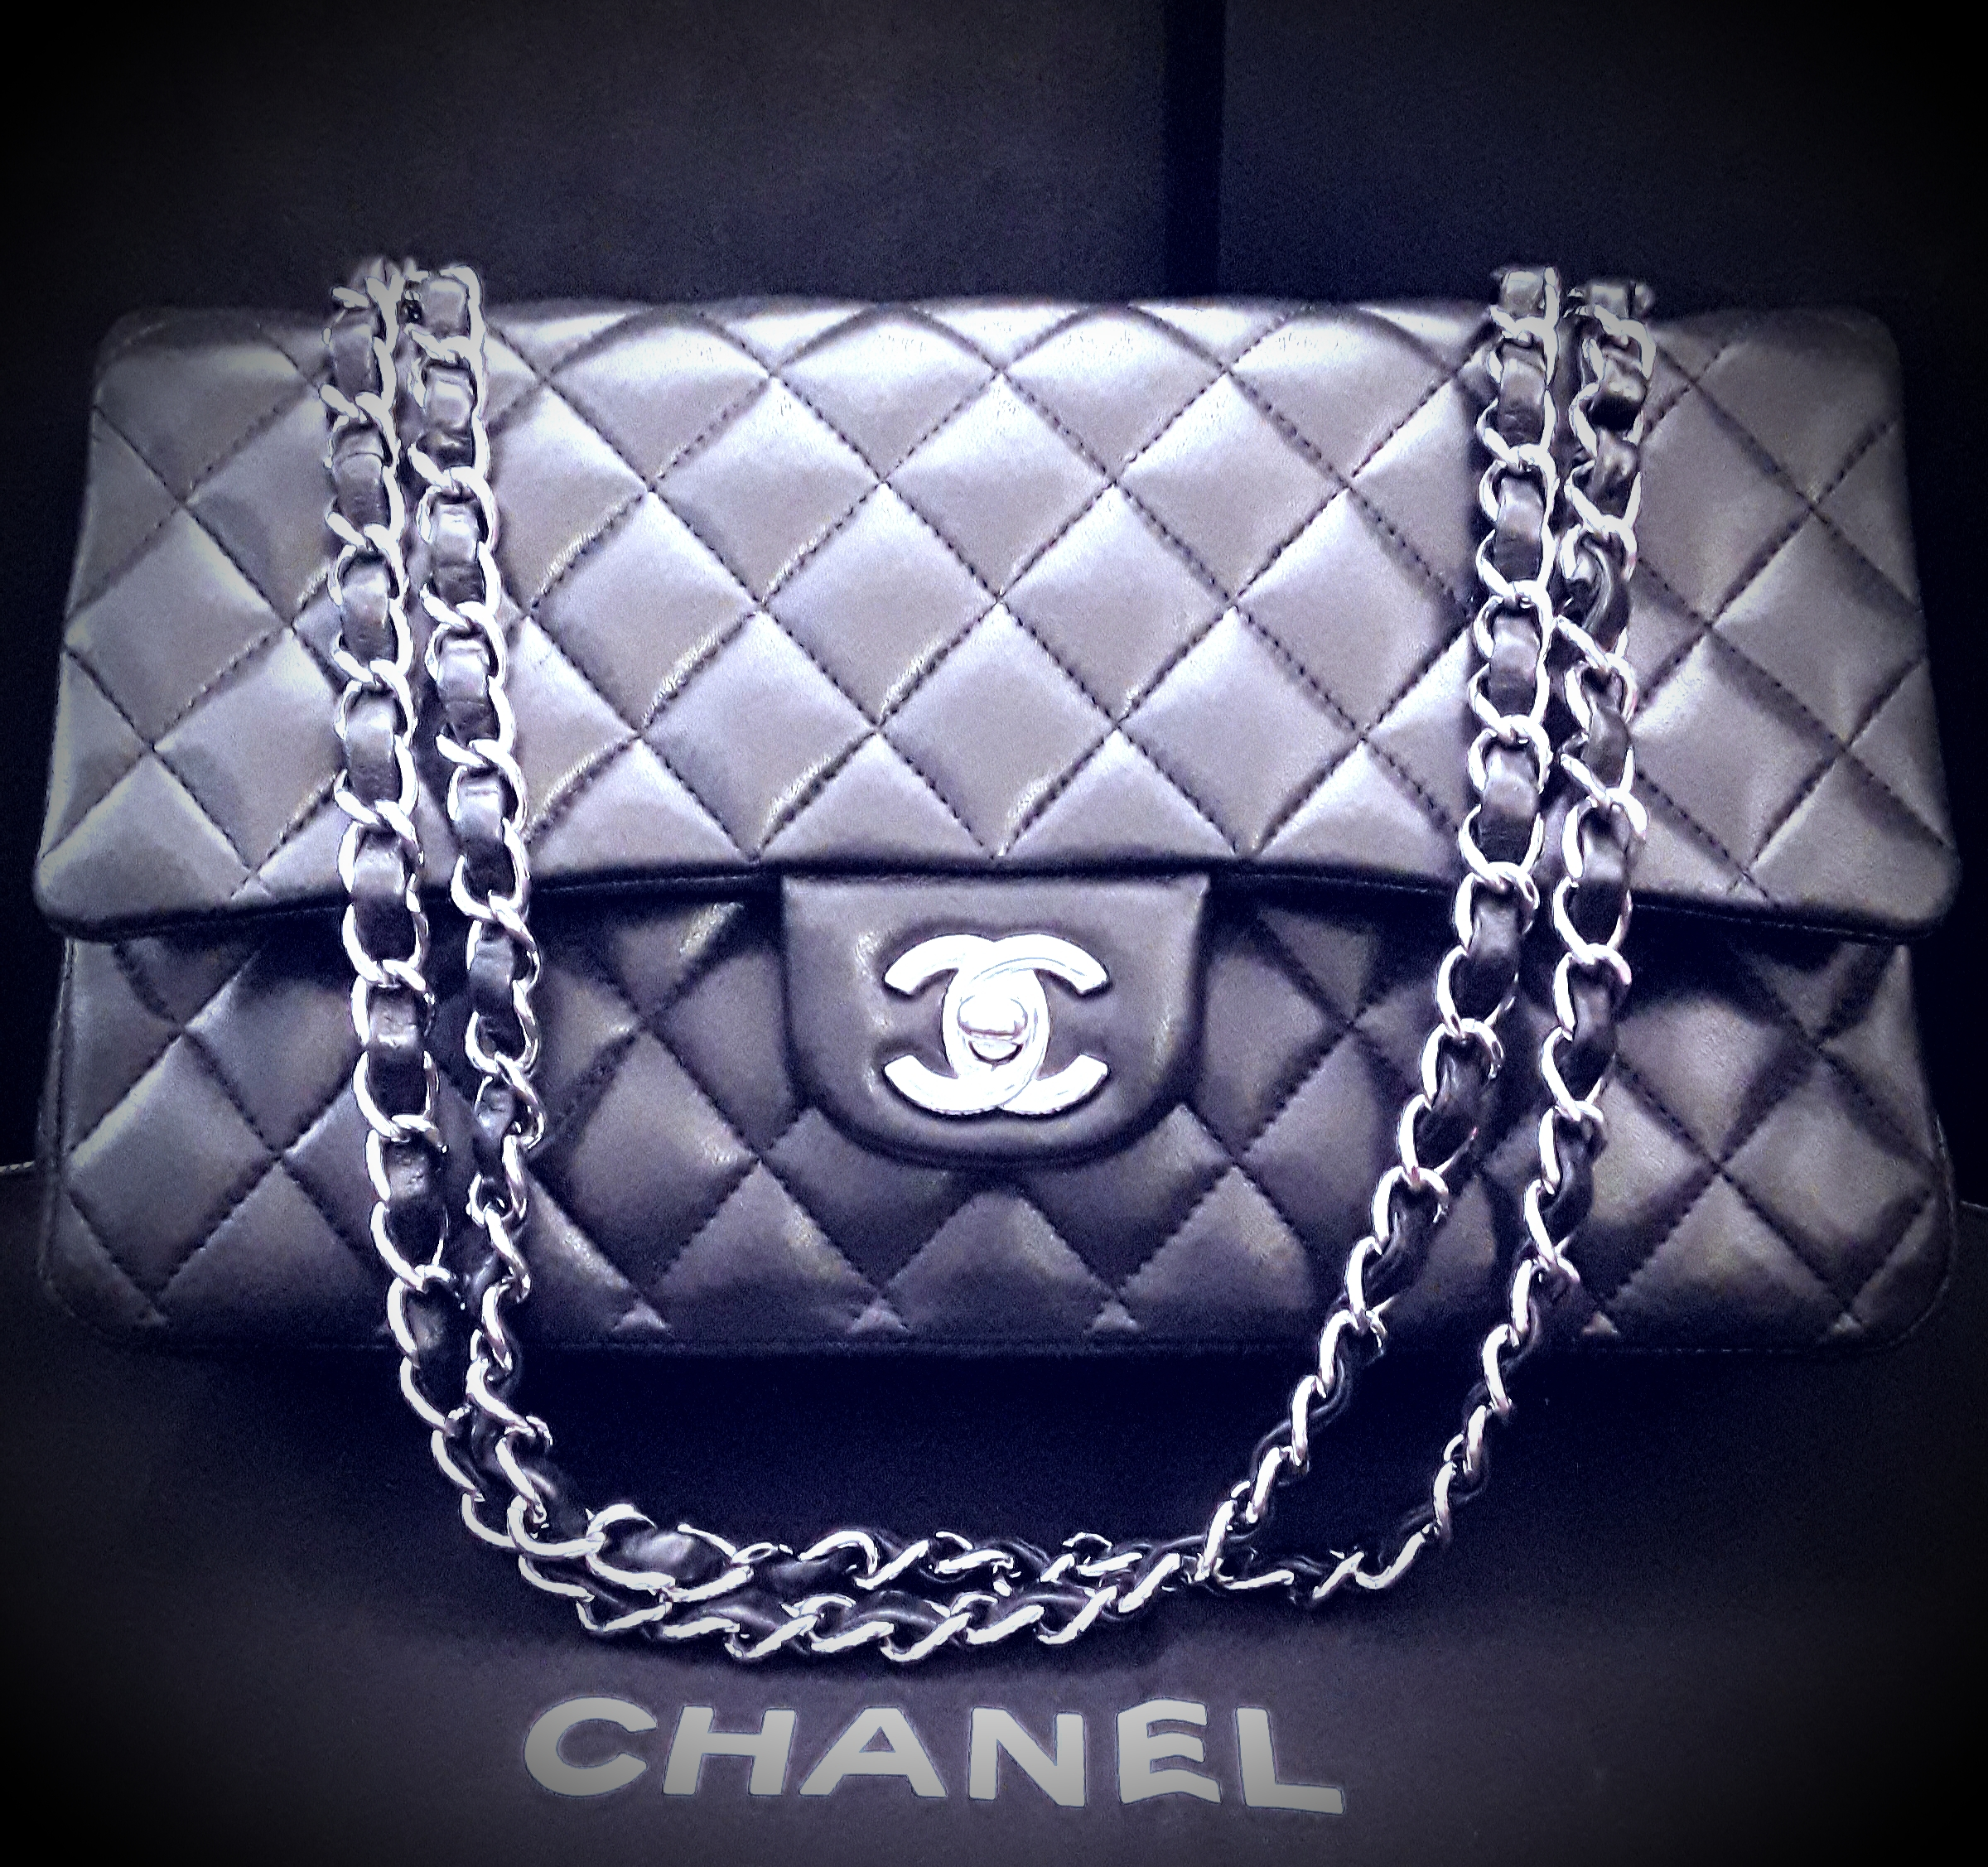 Sac CHANEL gris anthracite